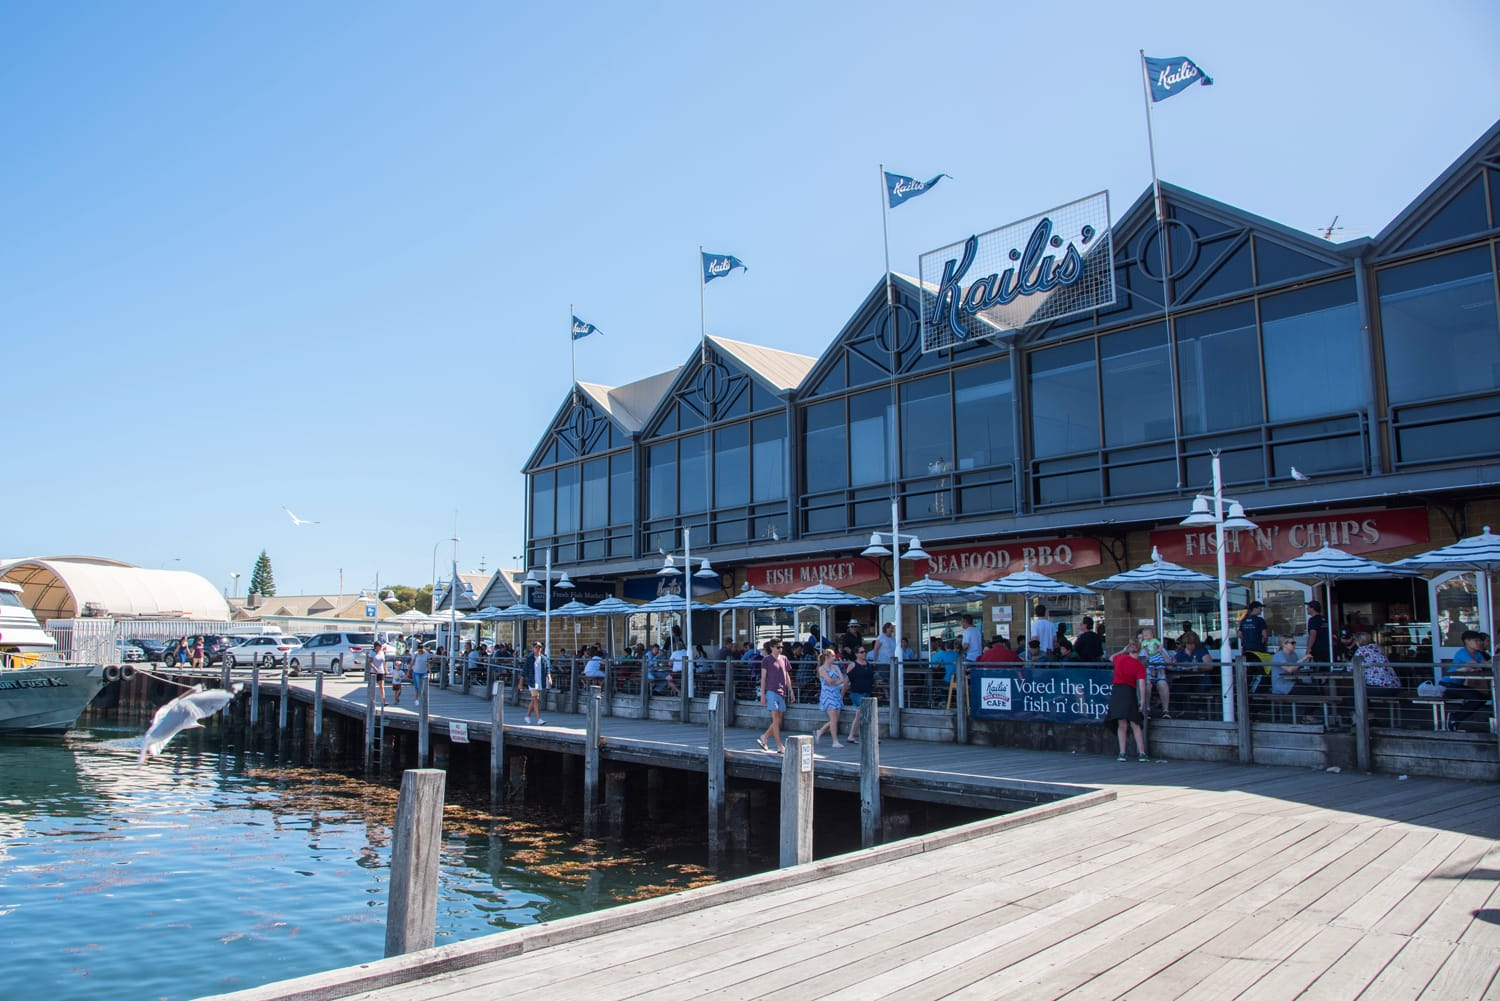 Kaili's Fish Market in Fremantle, Western Australia